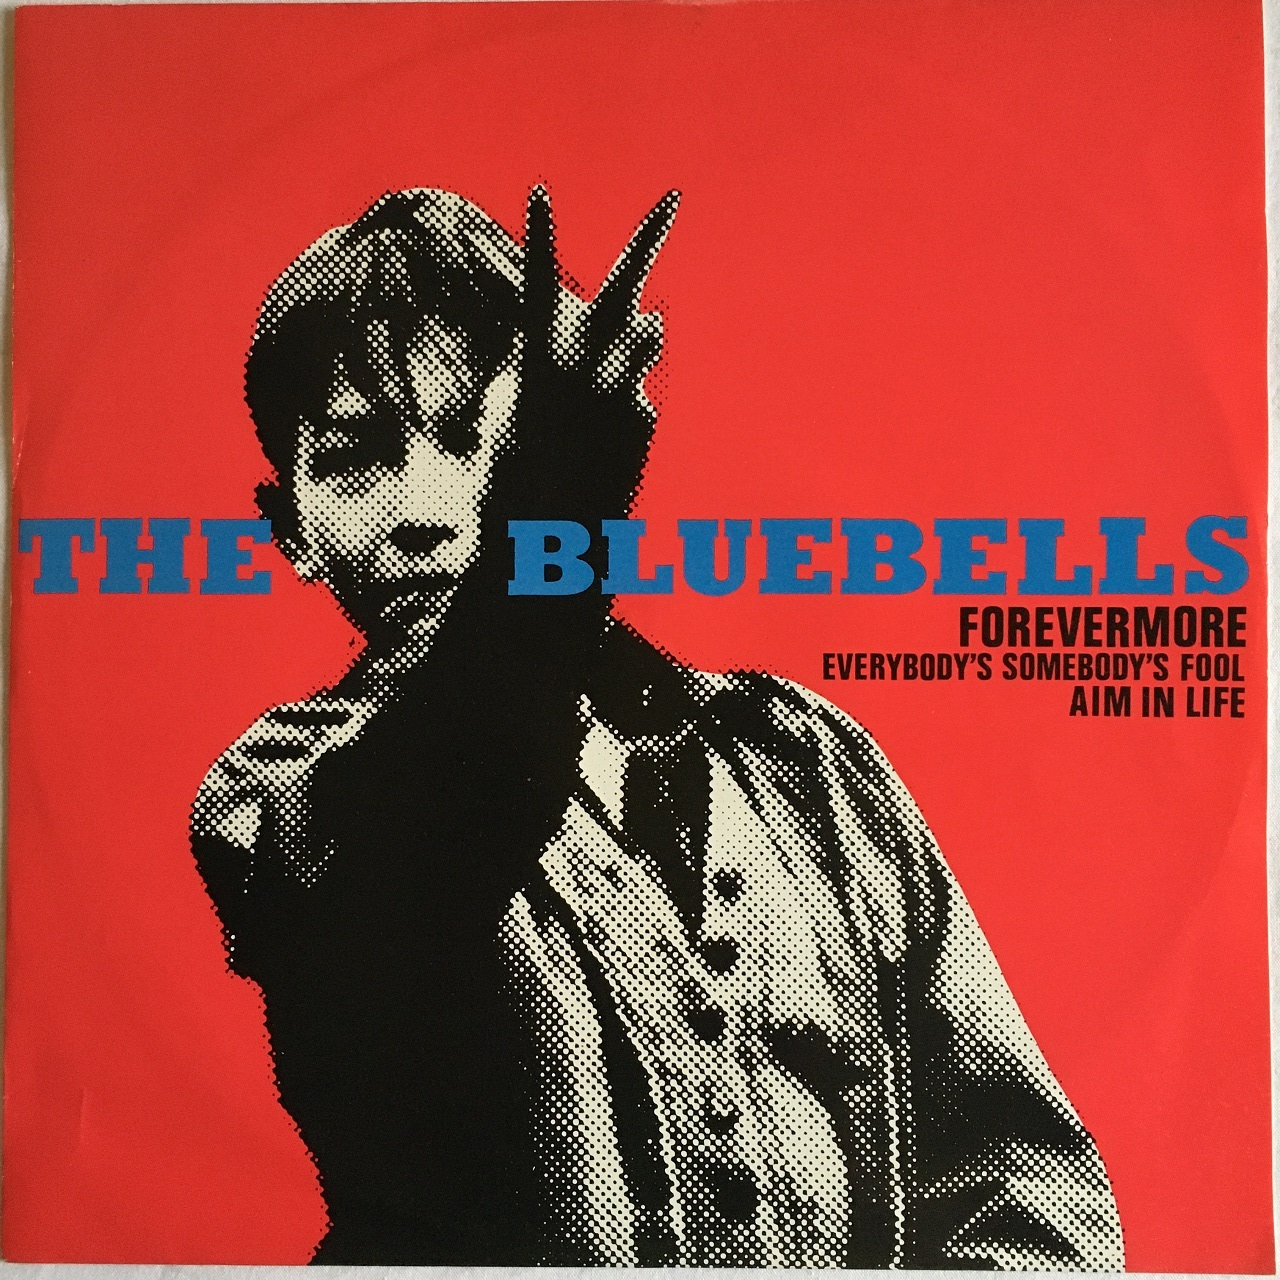 【12inch・英盤】The Bluebells / Forevermore